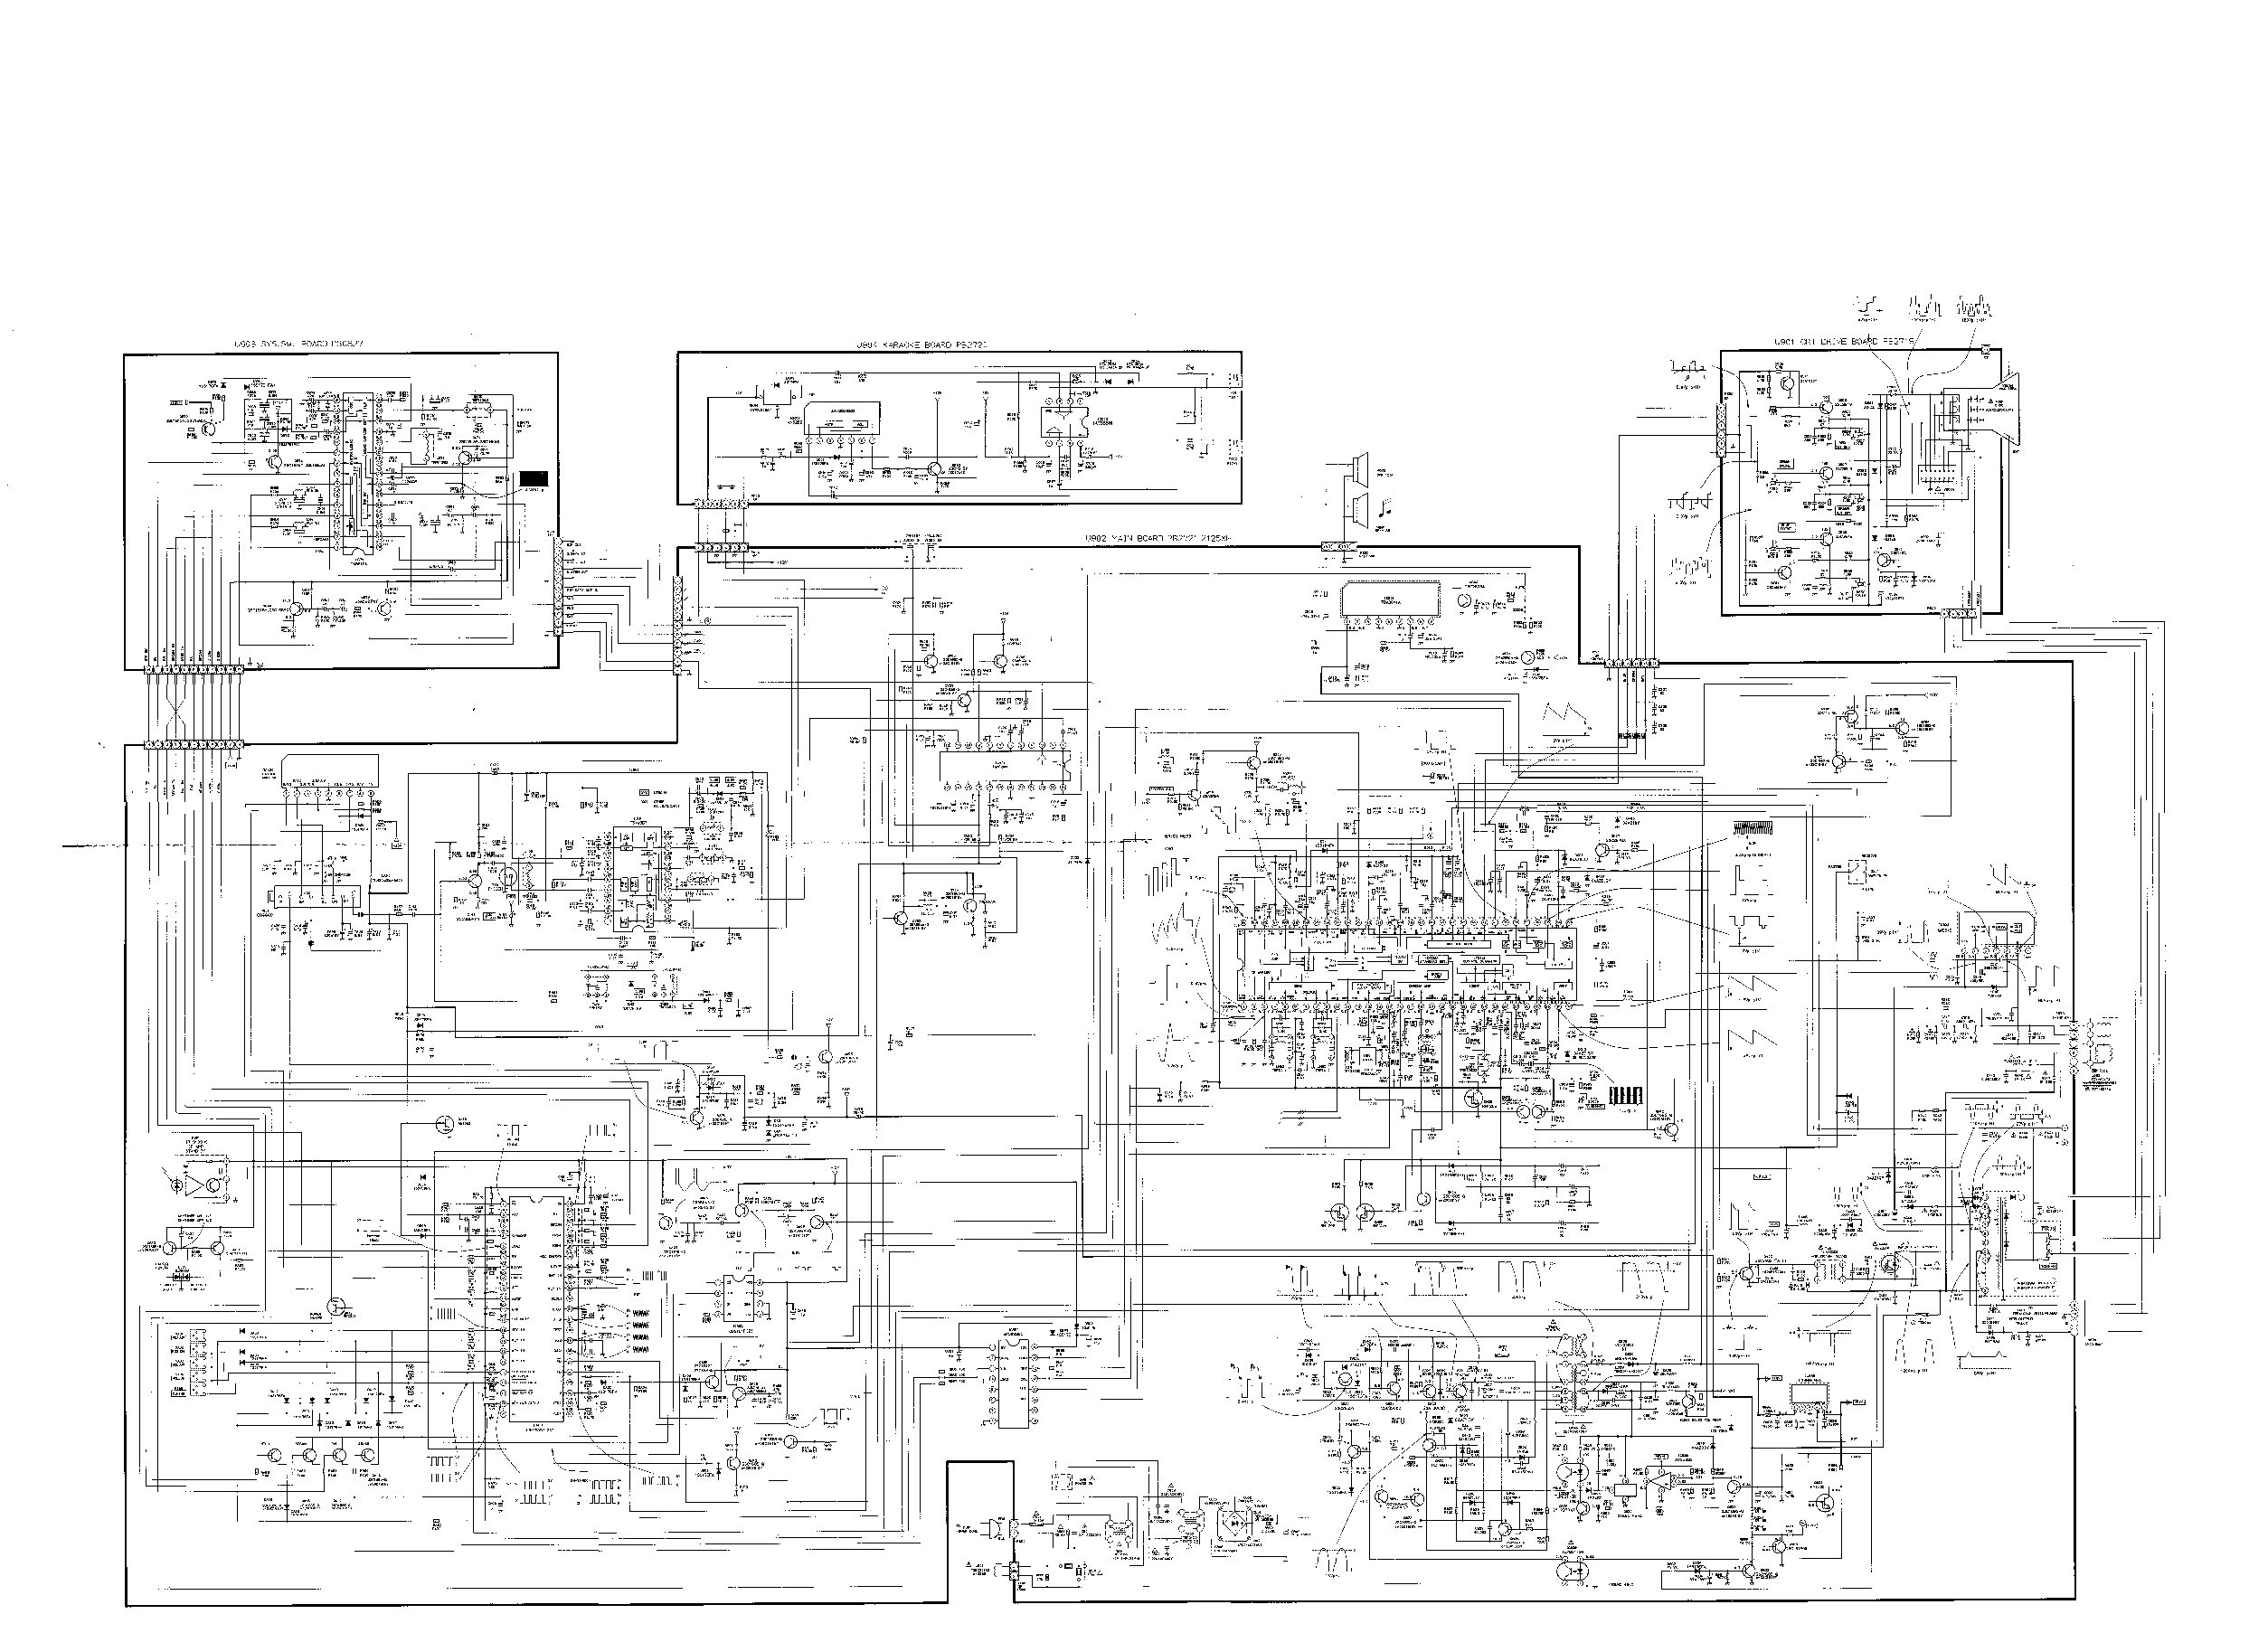 TOSHIBA 2125XH Service Manual download, schematics, eeprom